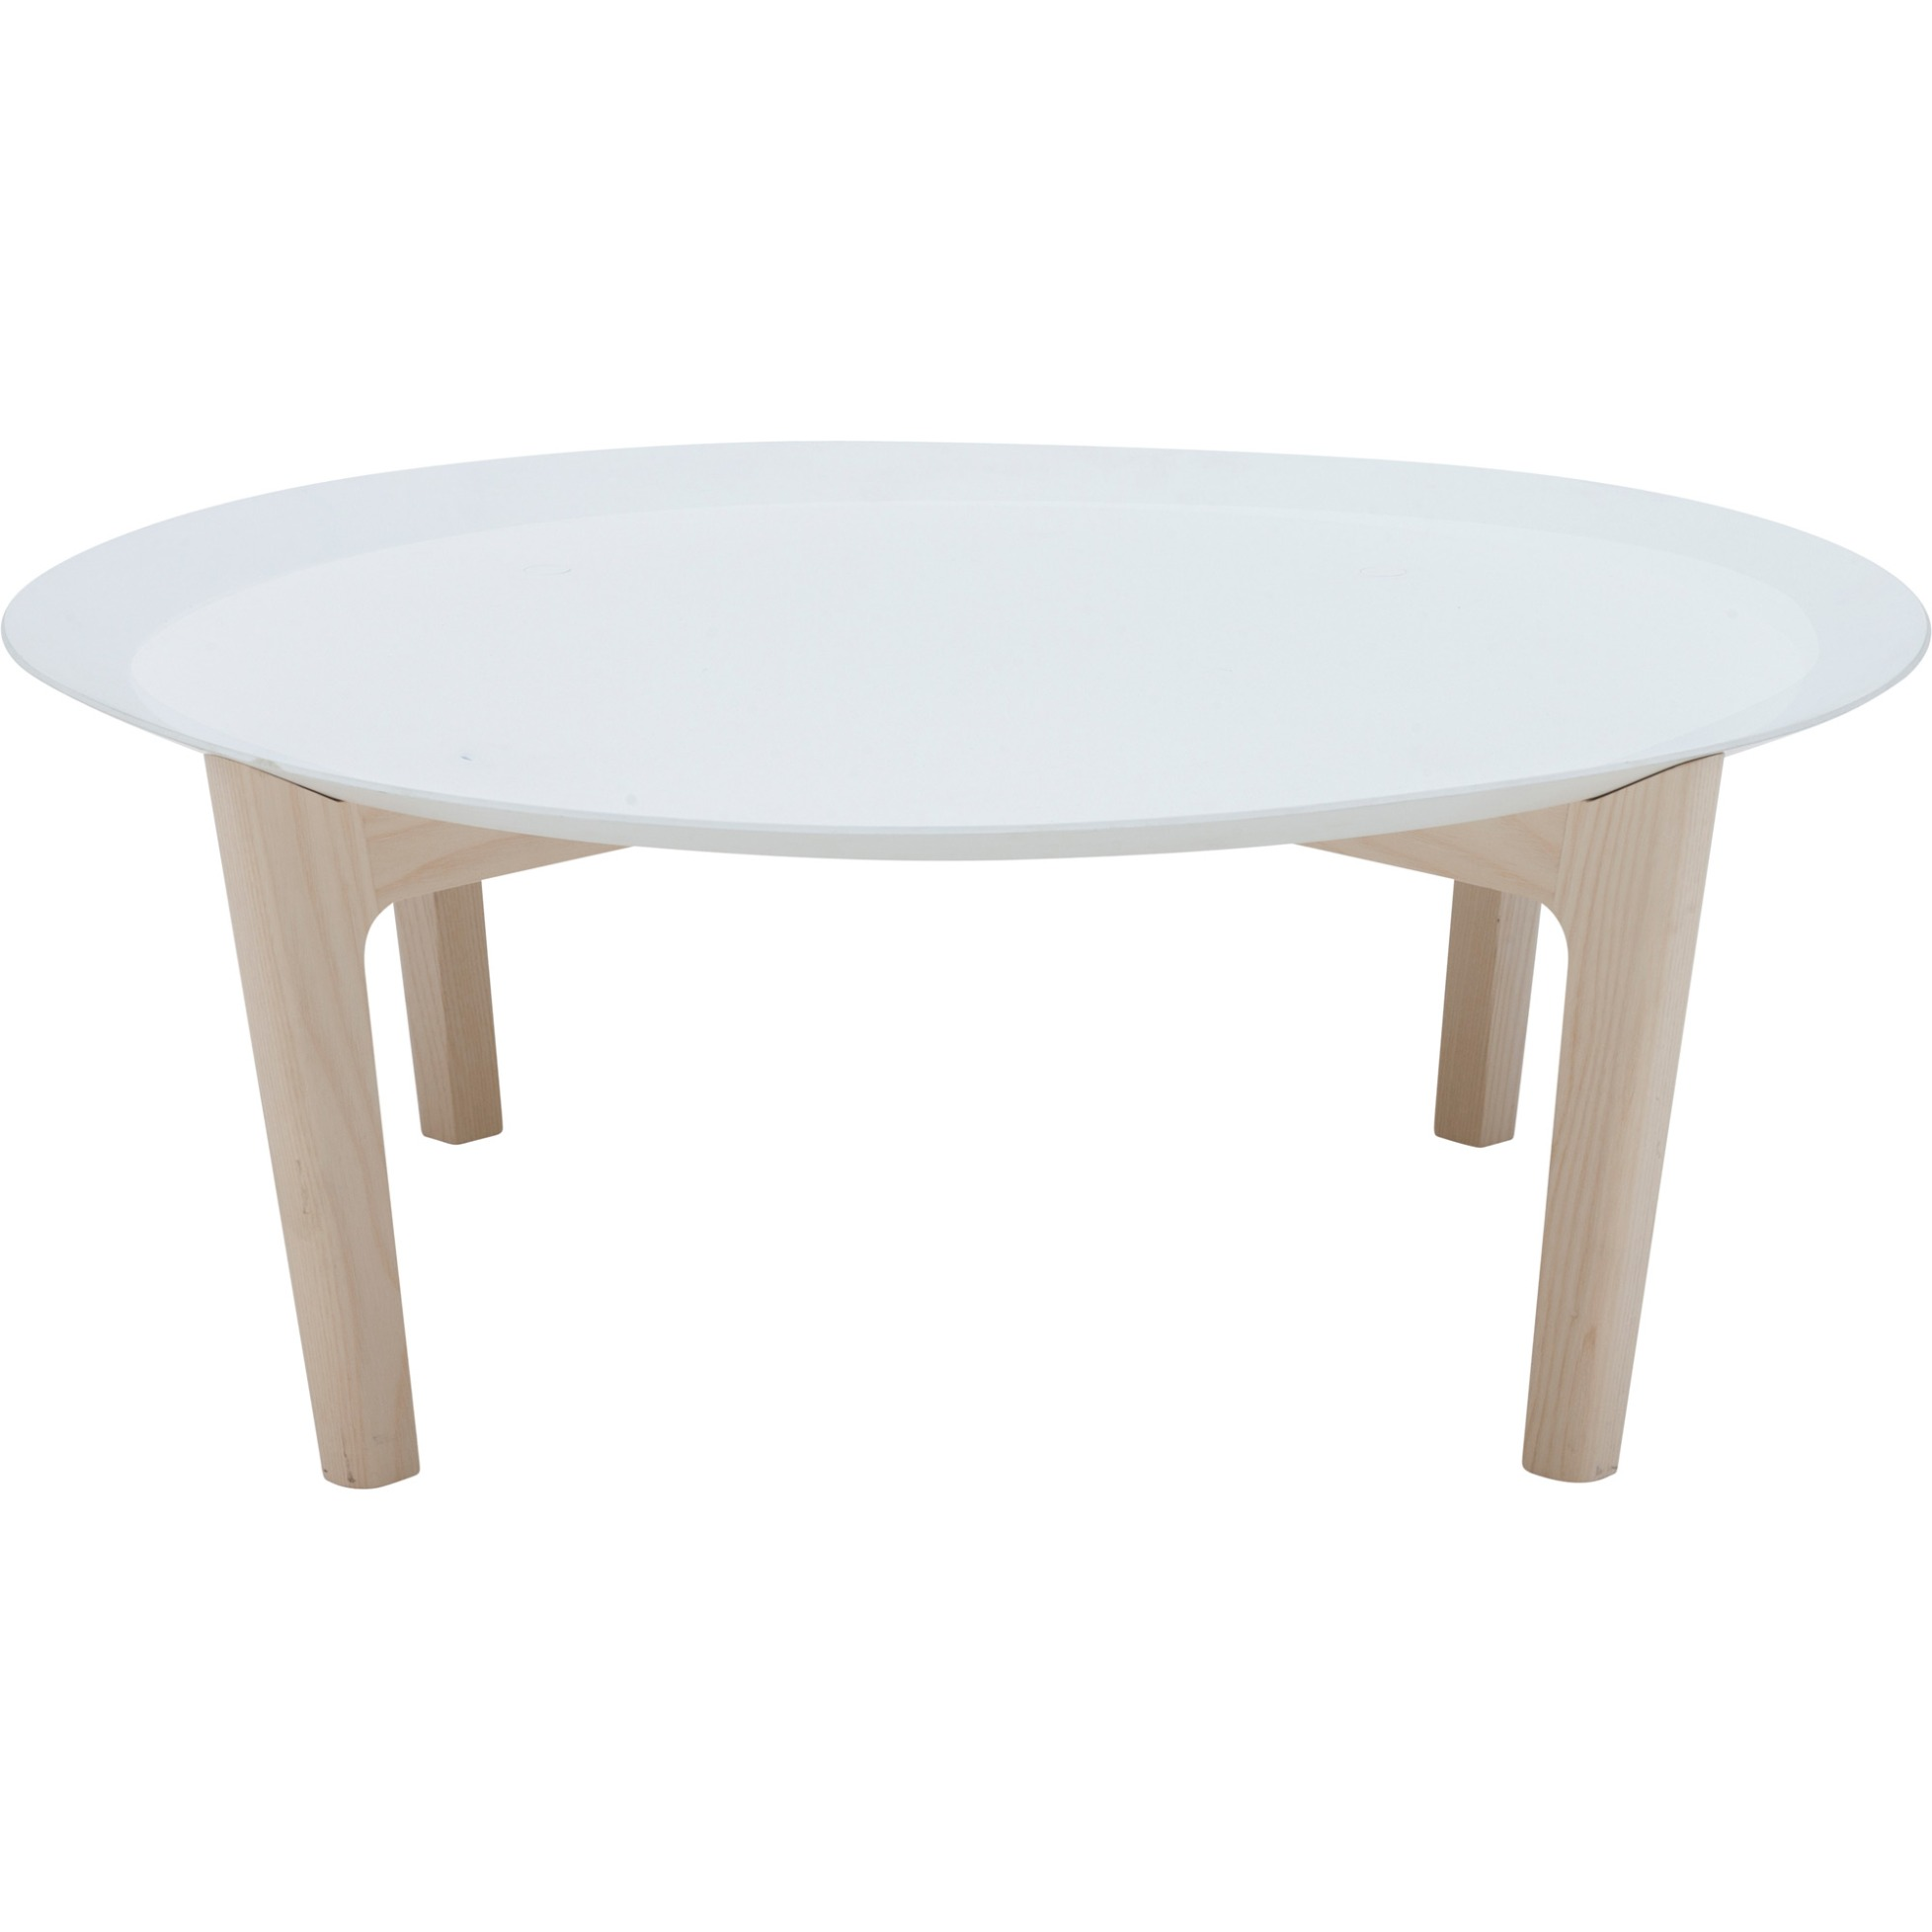 - Coffee Or Side Table Tray By Softline